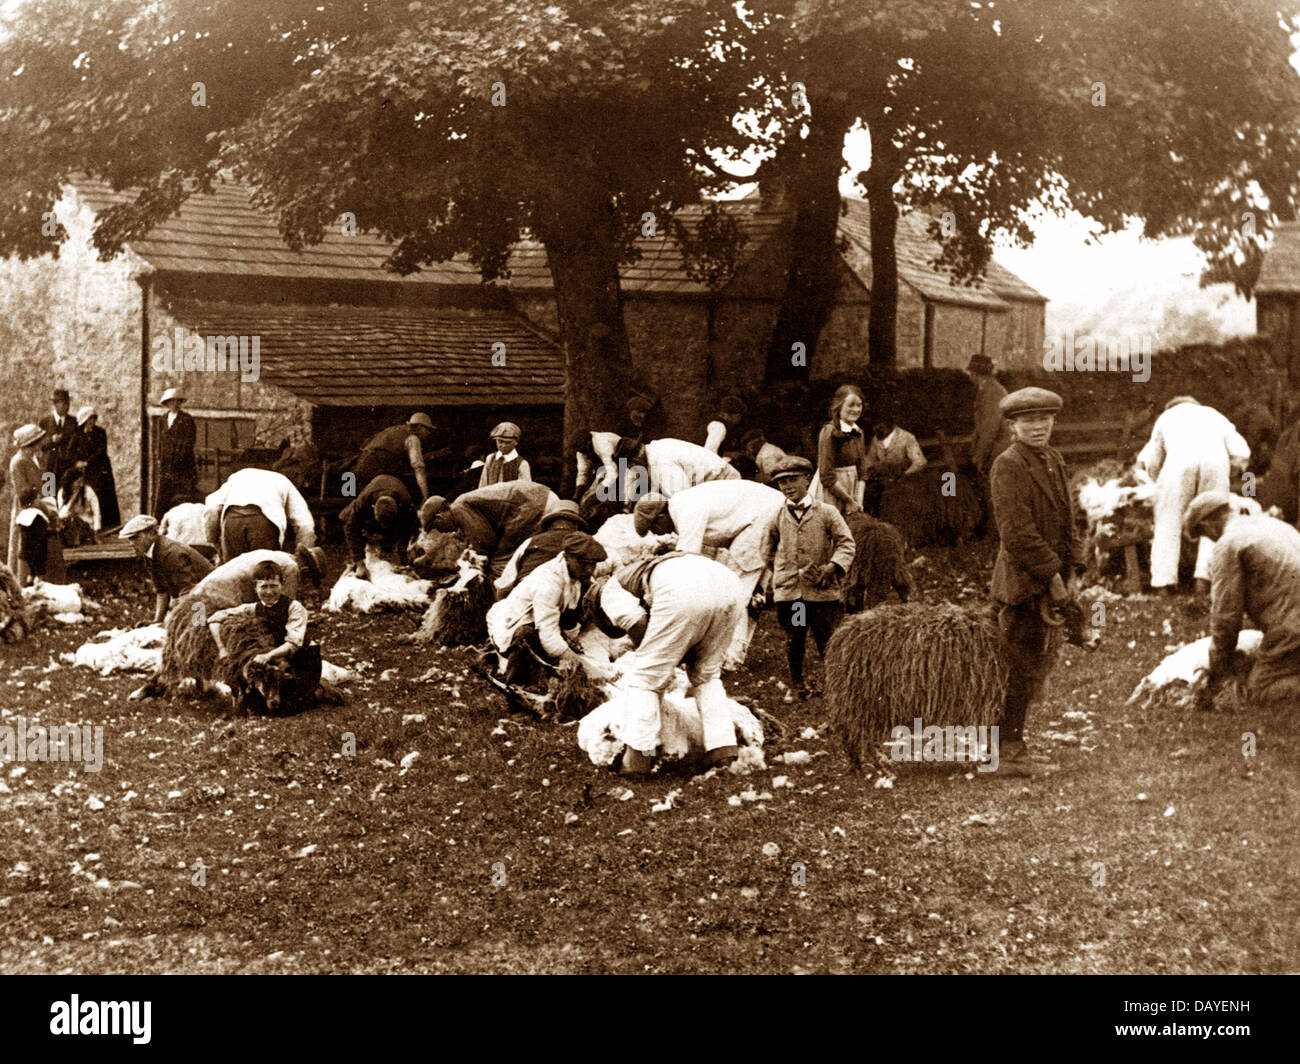 Stanhope Sheep Clipping in 1914 - Stock Image